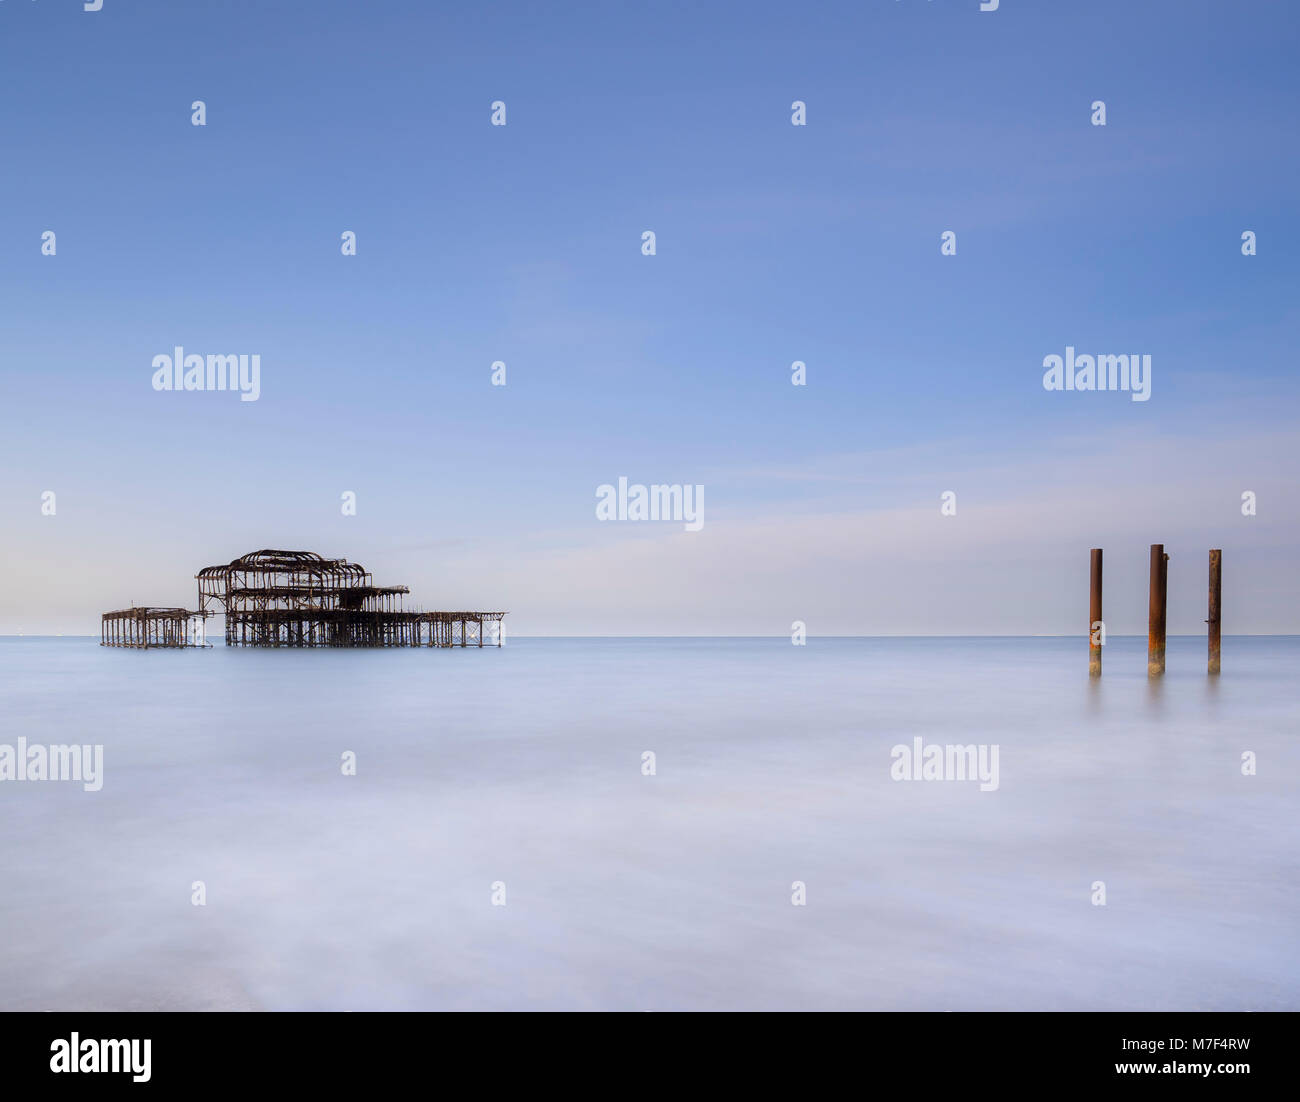 The old West Pier and what remains of the supporting posts at dawn. - Stock Image